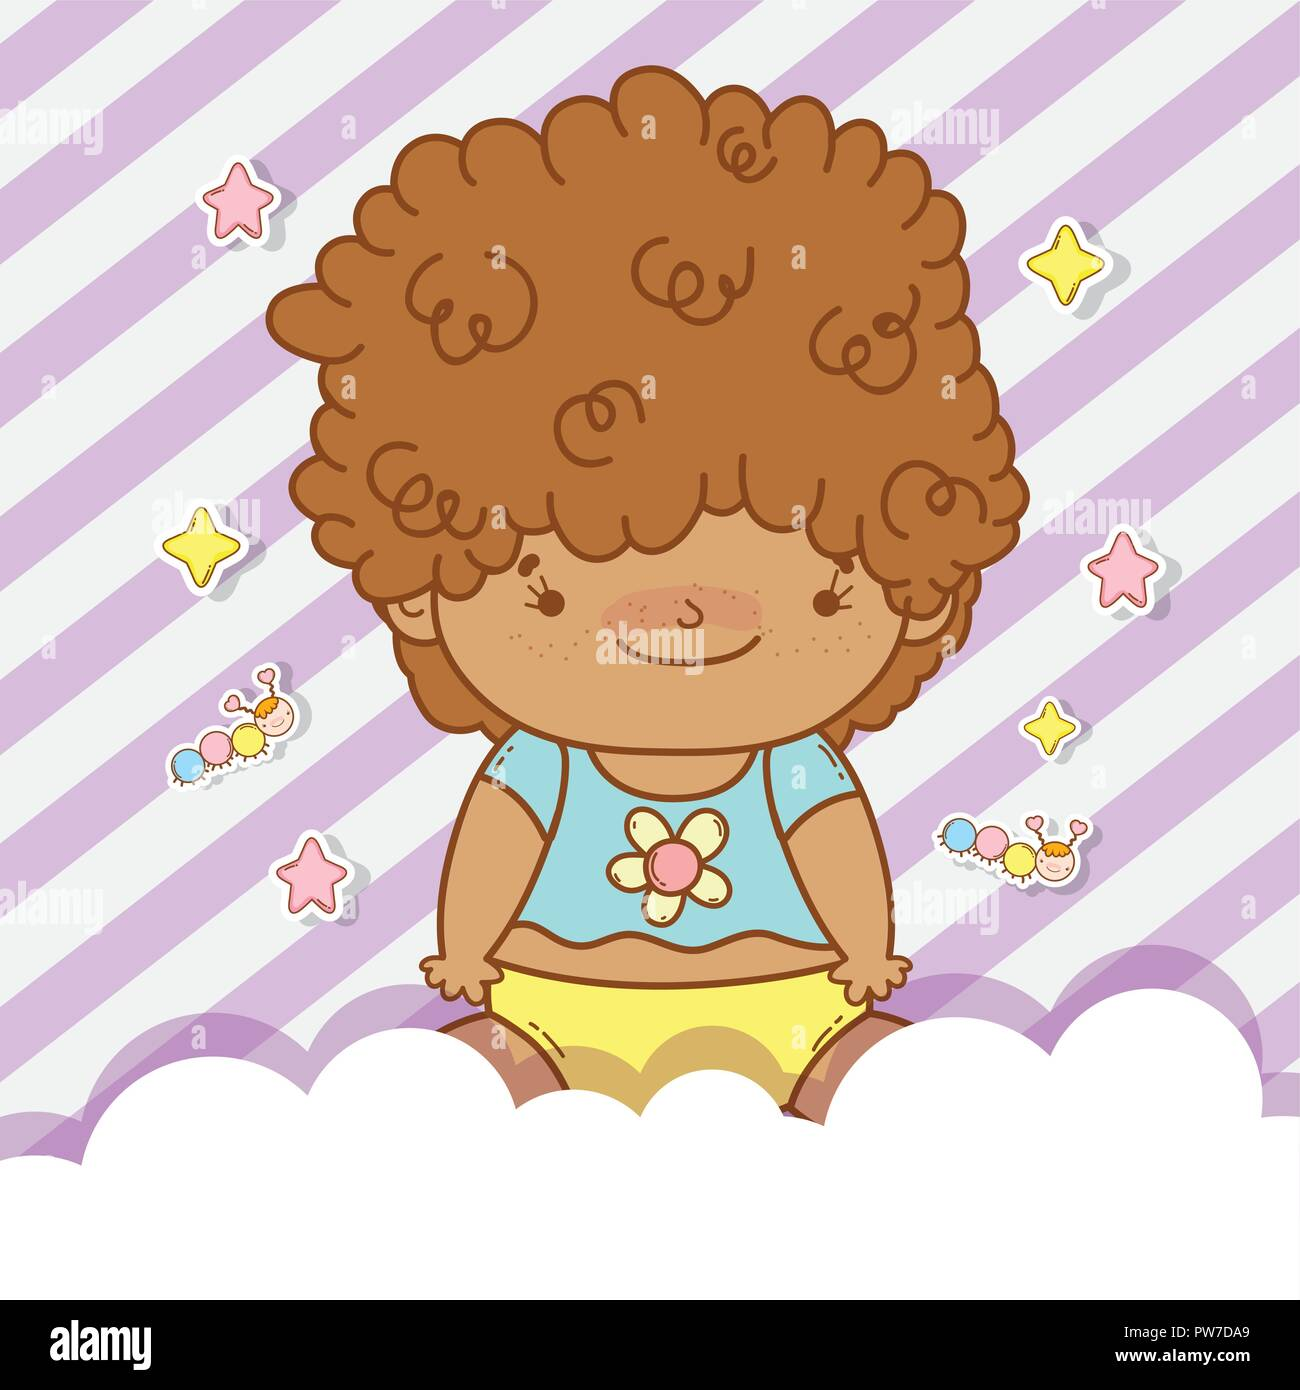 Cute Baby Boy With Curly Hair Stock Vector Image Art Alamy